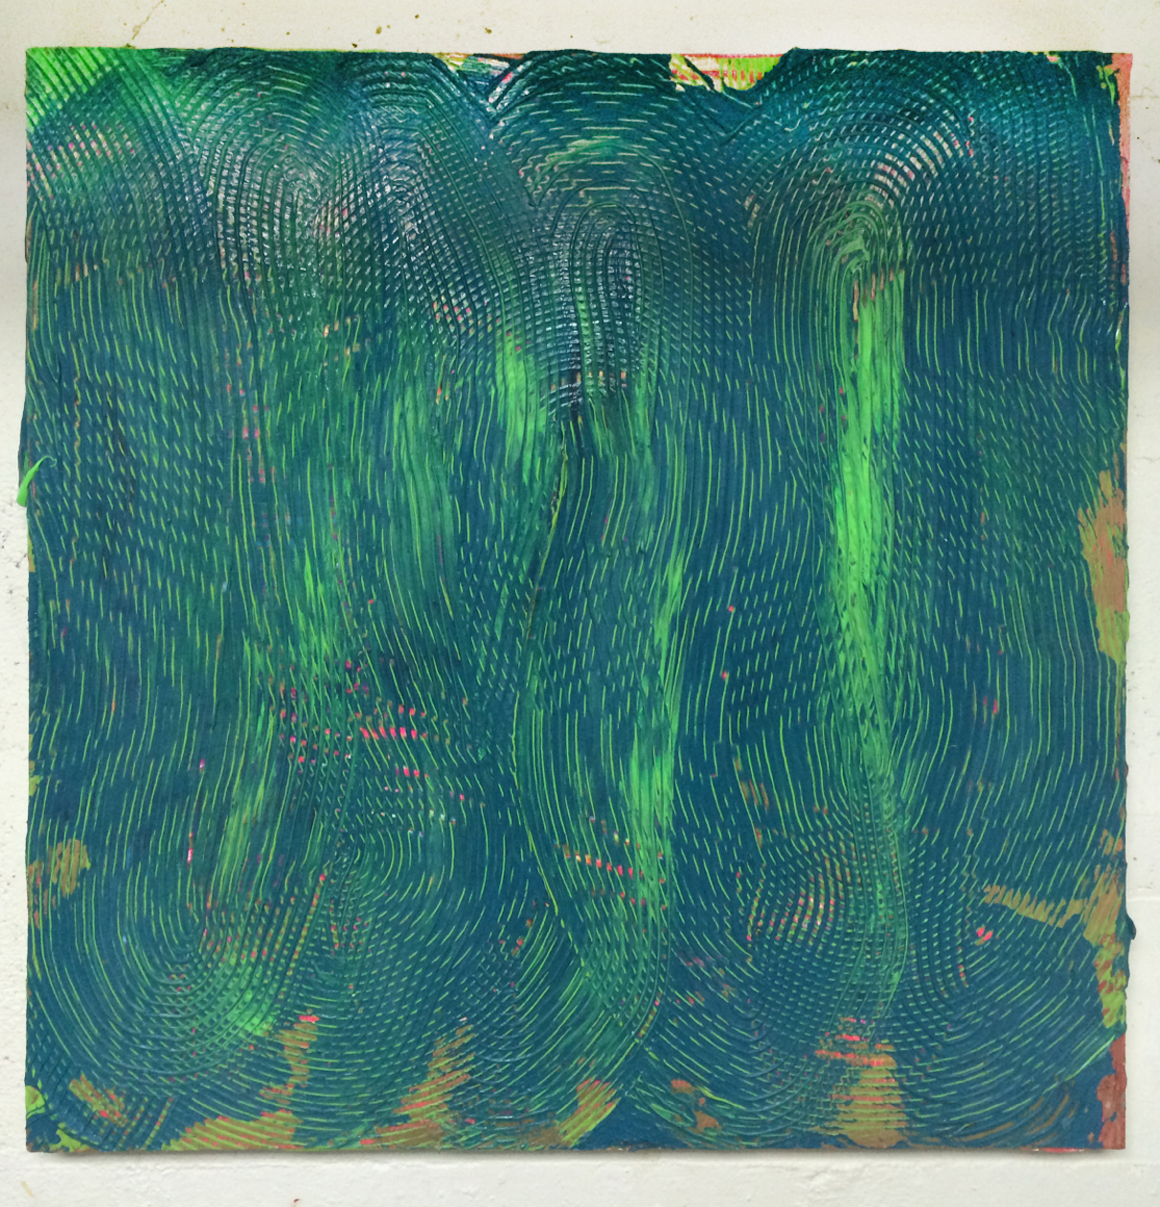 "<p><span class=""name"">Adam Bateman</span><br><em>Blue and Green</em><span class='media'>acrylic and spray paint on panel</span>24 x 24in<br>2014<br><a class='inquire' href='mailto:info@gildargallery.com?subject=Artwork Inquiry ABAT0017&body=I am interested in finding out more about Blue and Green by Adam Bateman'>Inquire</a></p>"